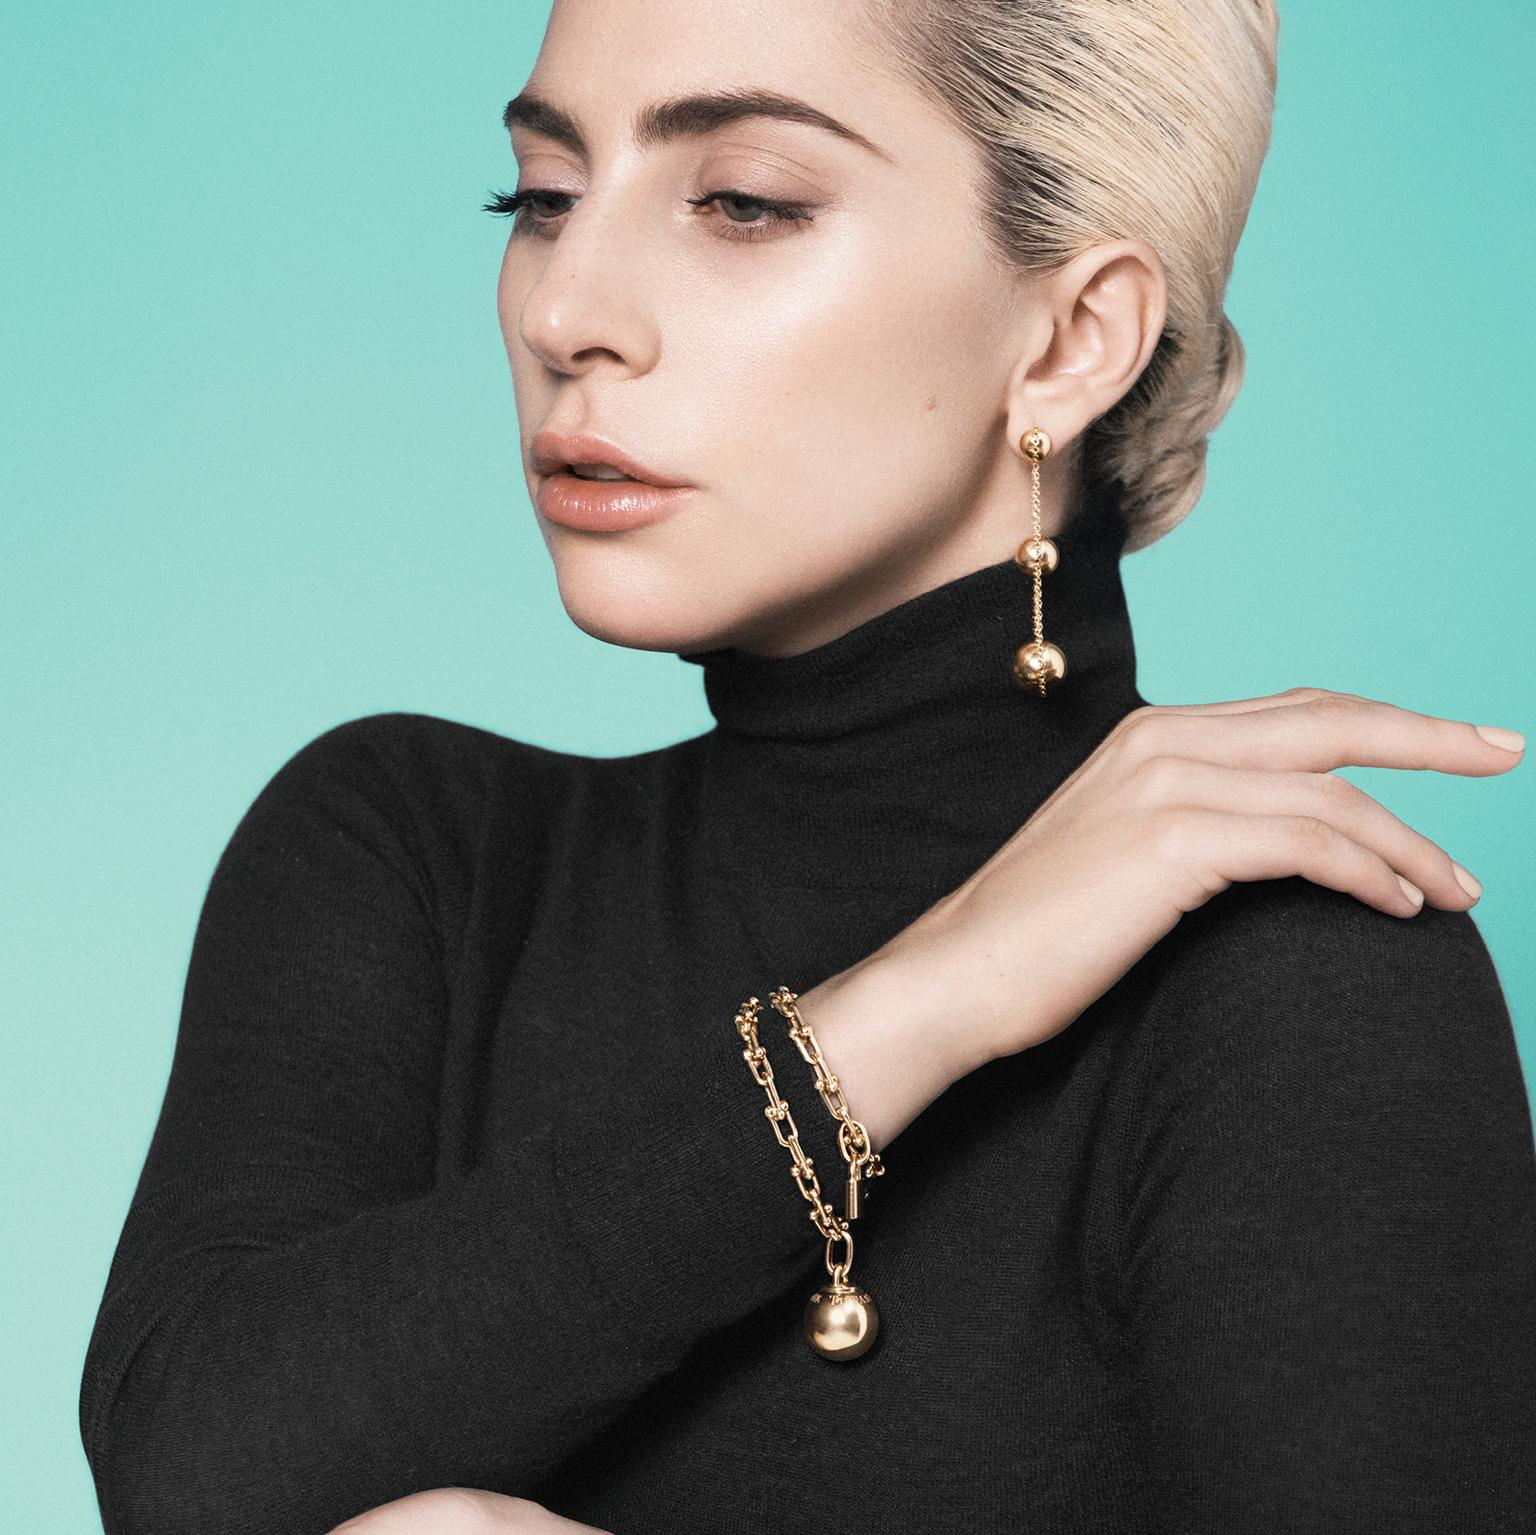 Lady Gaga models Tiffany City HardWear